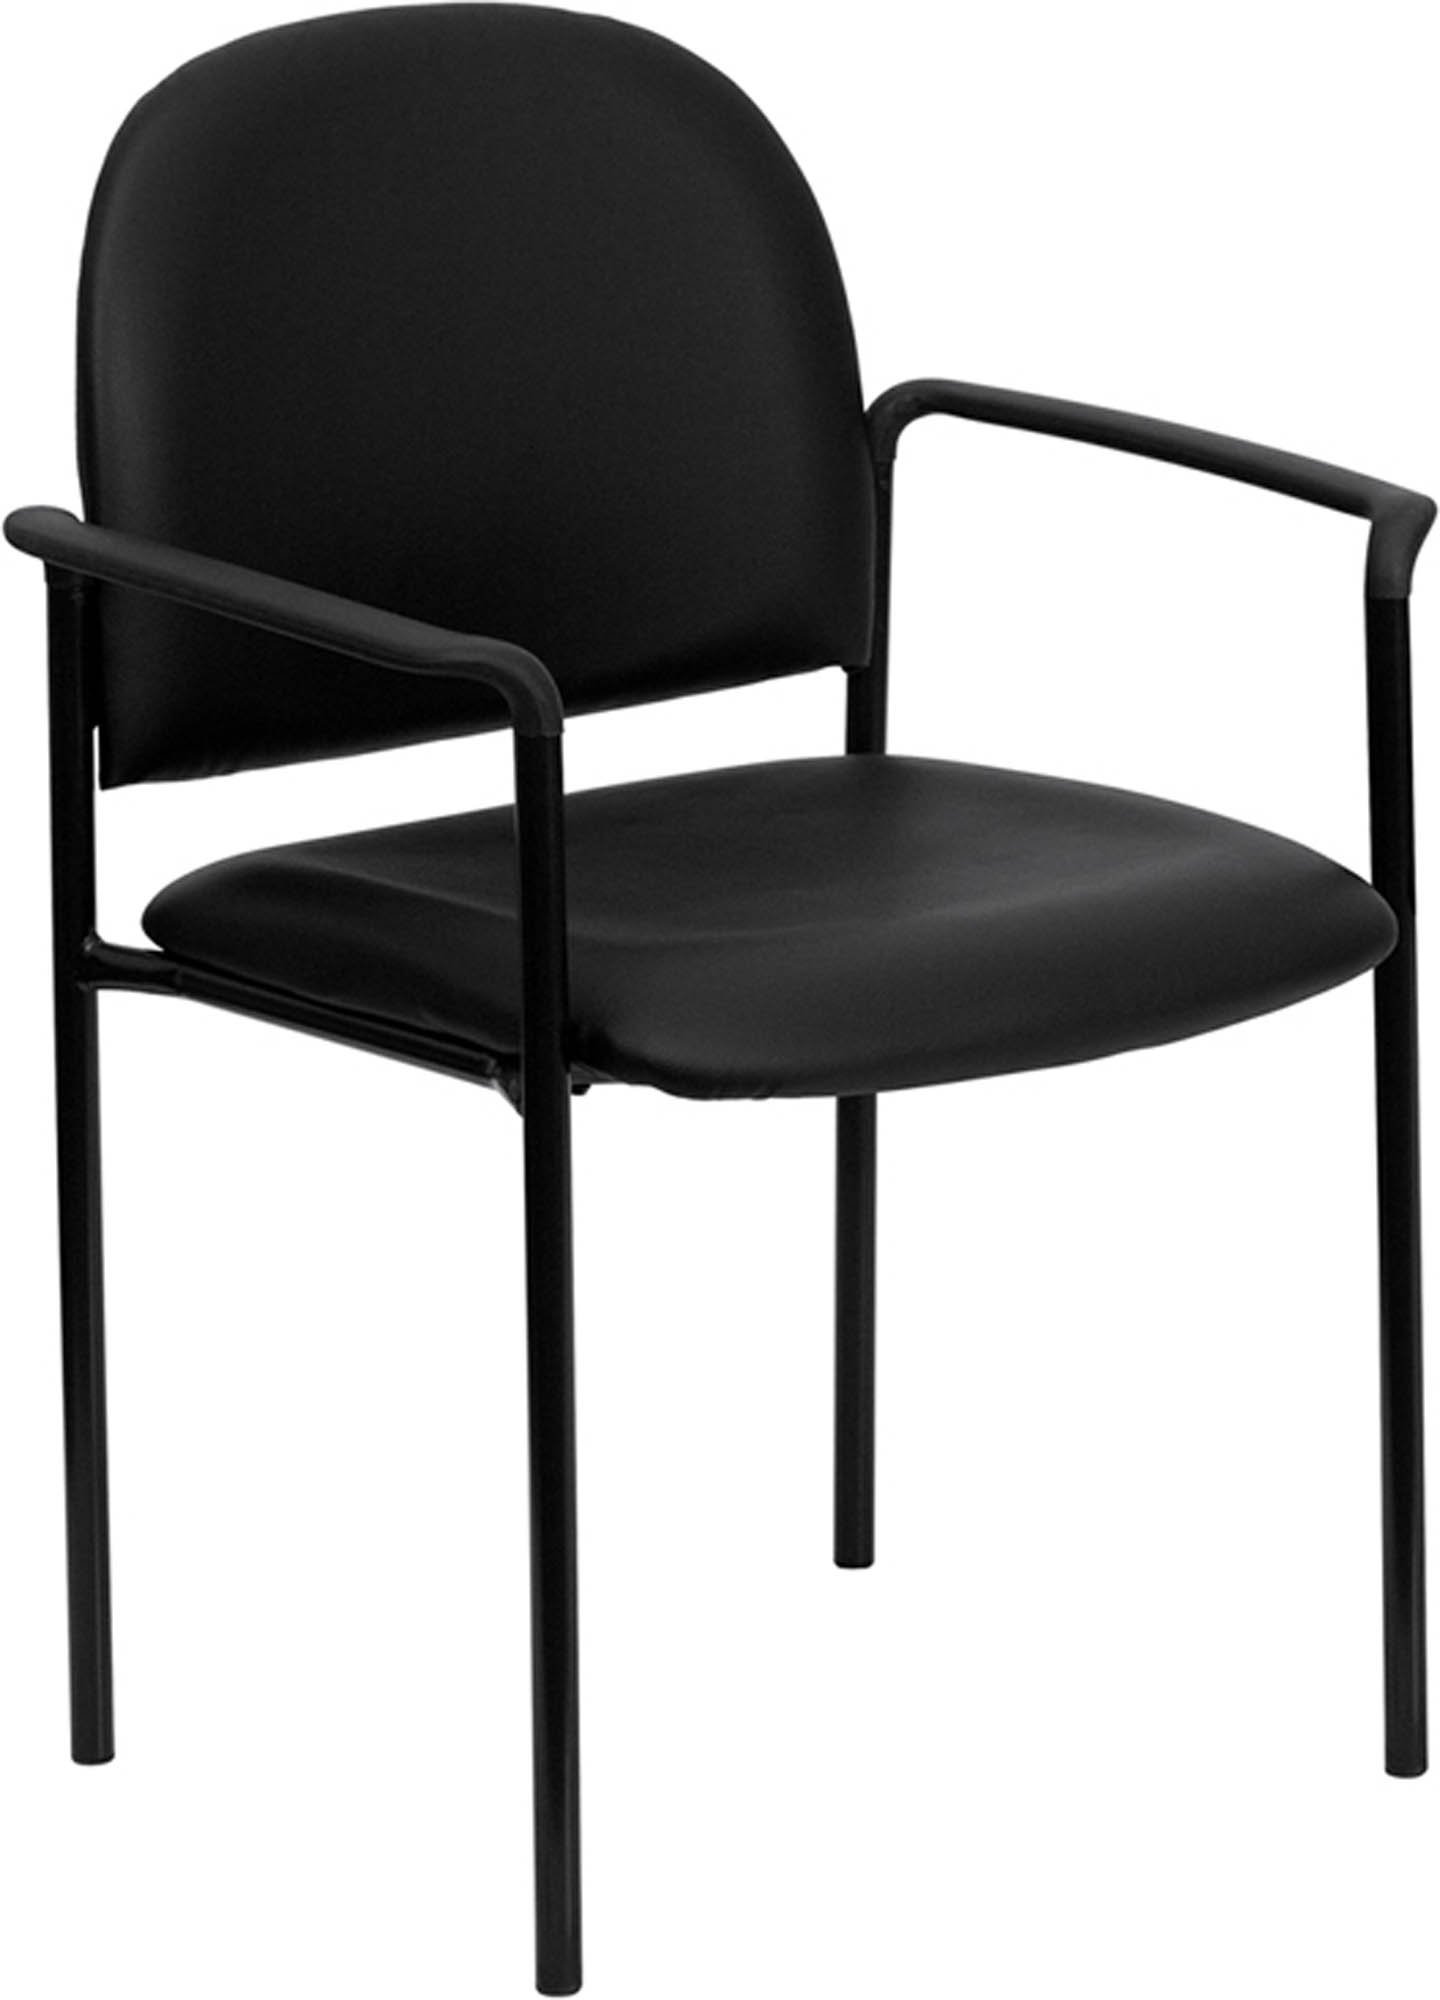 Offex Black Vinyl Comfortable Stackable Steel Side Chair with Arms [BT-516-1-VINYL-GG]